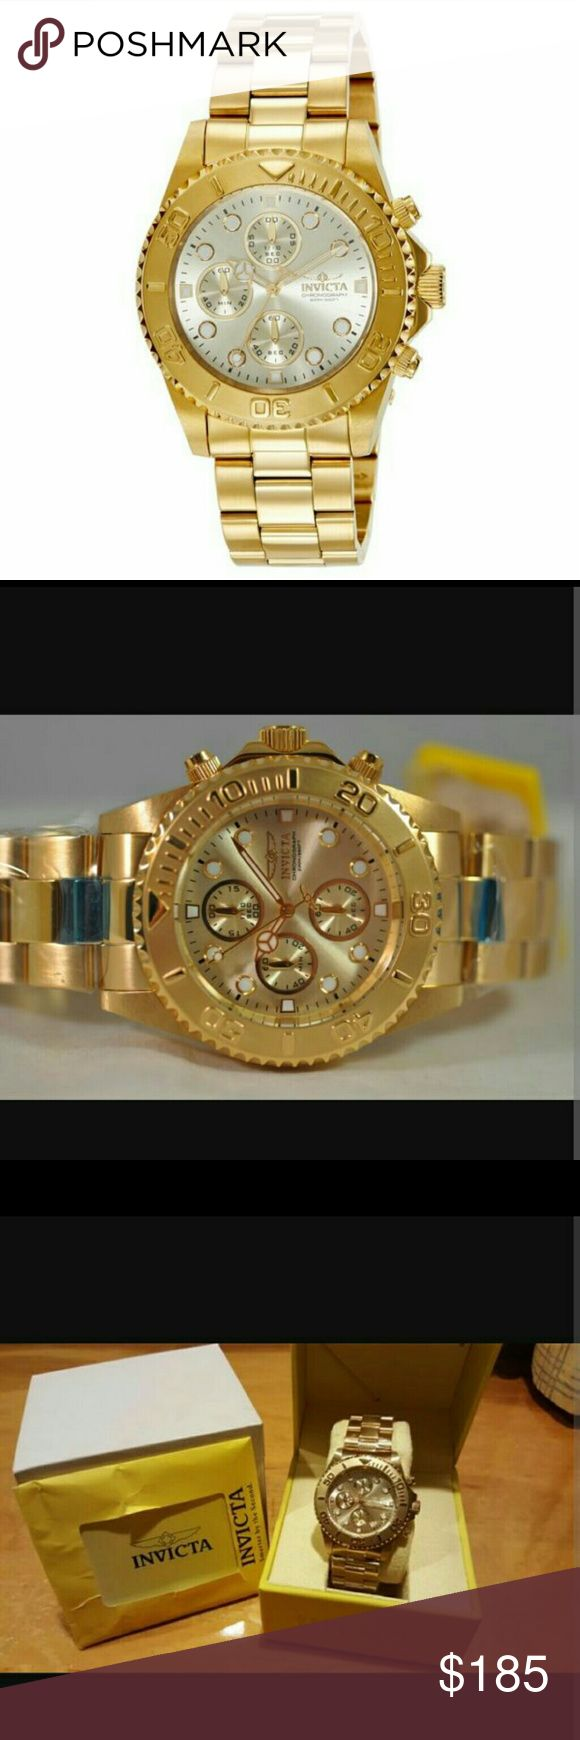 NWT Invicta $700 18K Gold chronograph watch Invicta Men's Pro-Diver Chronograph 18k Gold Ion-Plated Stainless Steel Watch   FIRM PRICE firm price firm price firm price  $199.00 . AUTHENTIC WATCH  . AUTHENTIC BOX  . AUTHENTIC MANUAL    SHIPPING  I will shipped it in 3-4 business day...i have to get it from my warehouse.   THANK YOU FOR YOUR UNDERSTANDING Invicta Accessories Watches